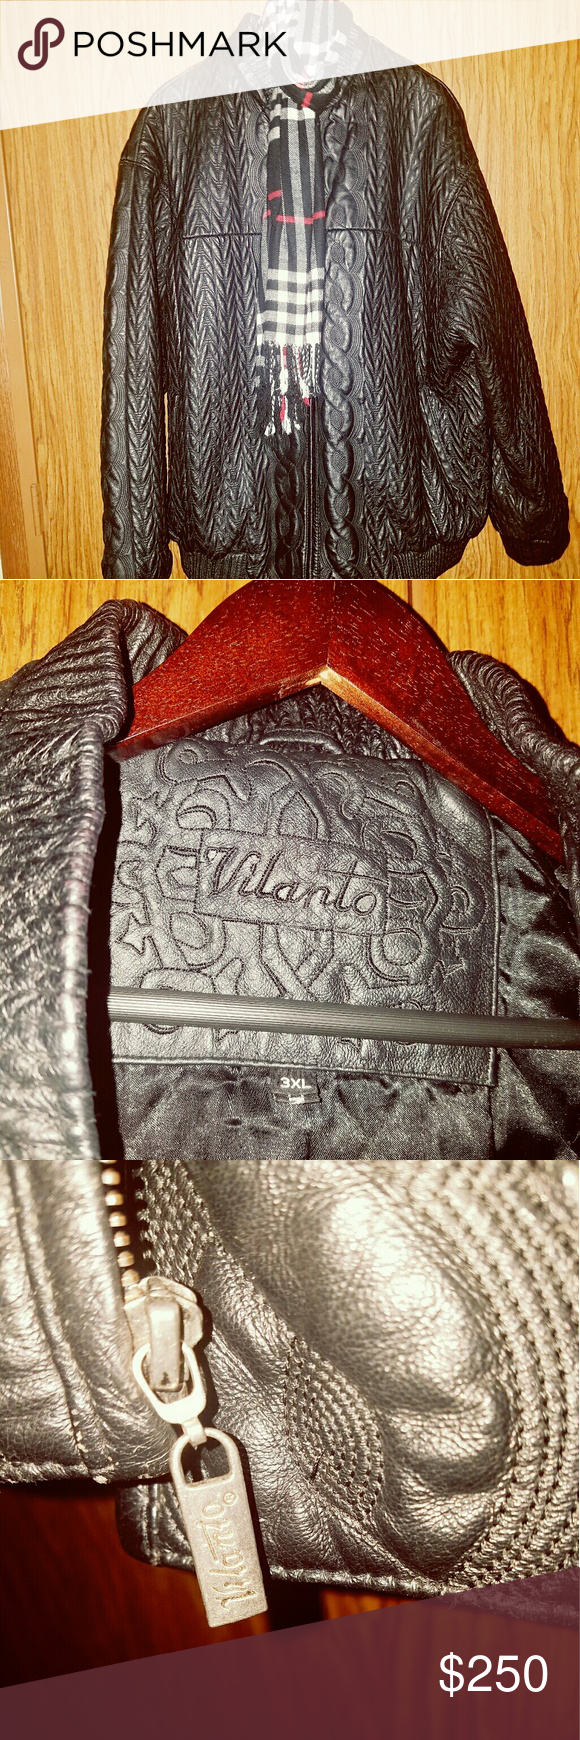 Vilanto Leather Coat Very Warm And Heavy Brought In Great Condition No Flaws Other Jackets Coats Leather Coat Clothes Design Real Leather [ 1740 x 580 Pixel ]